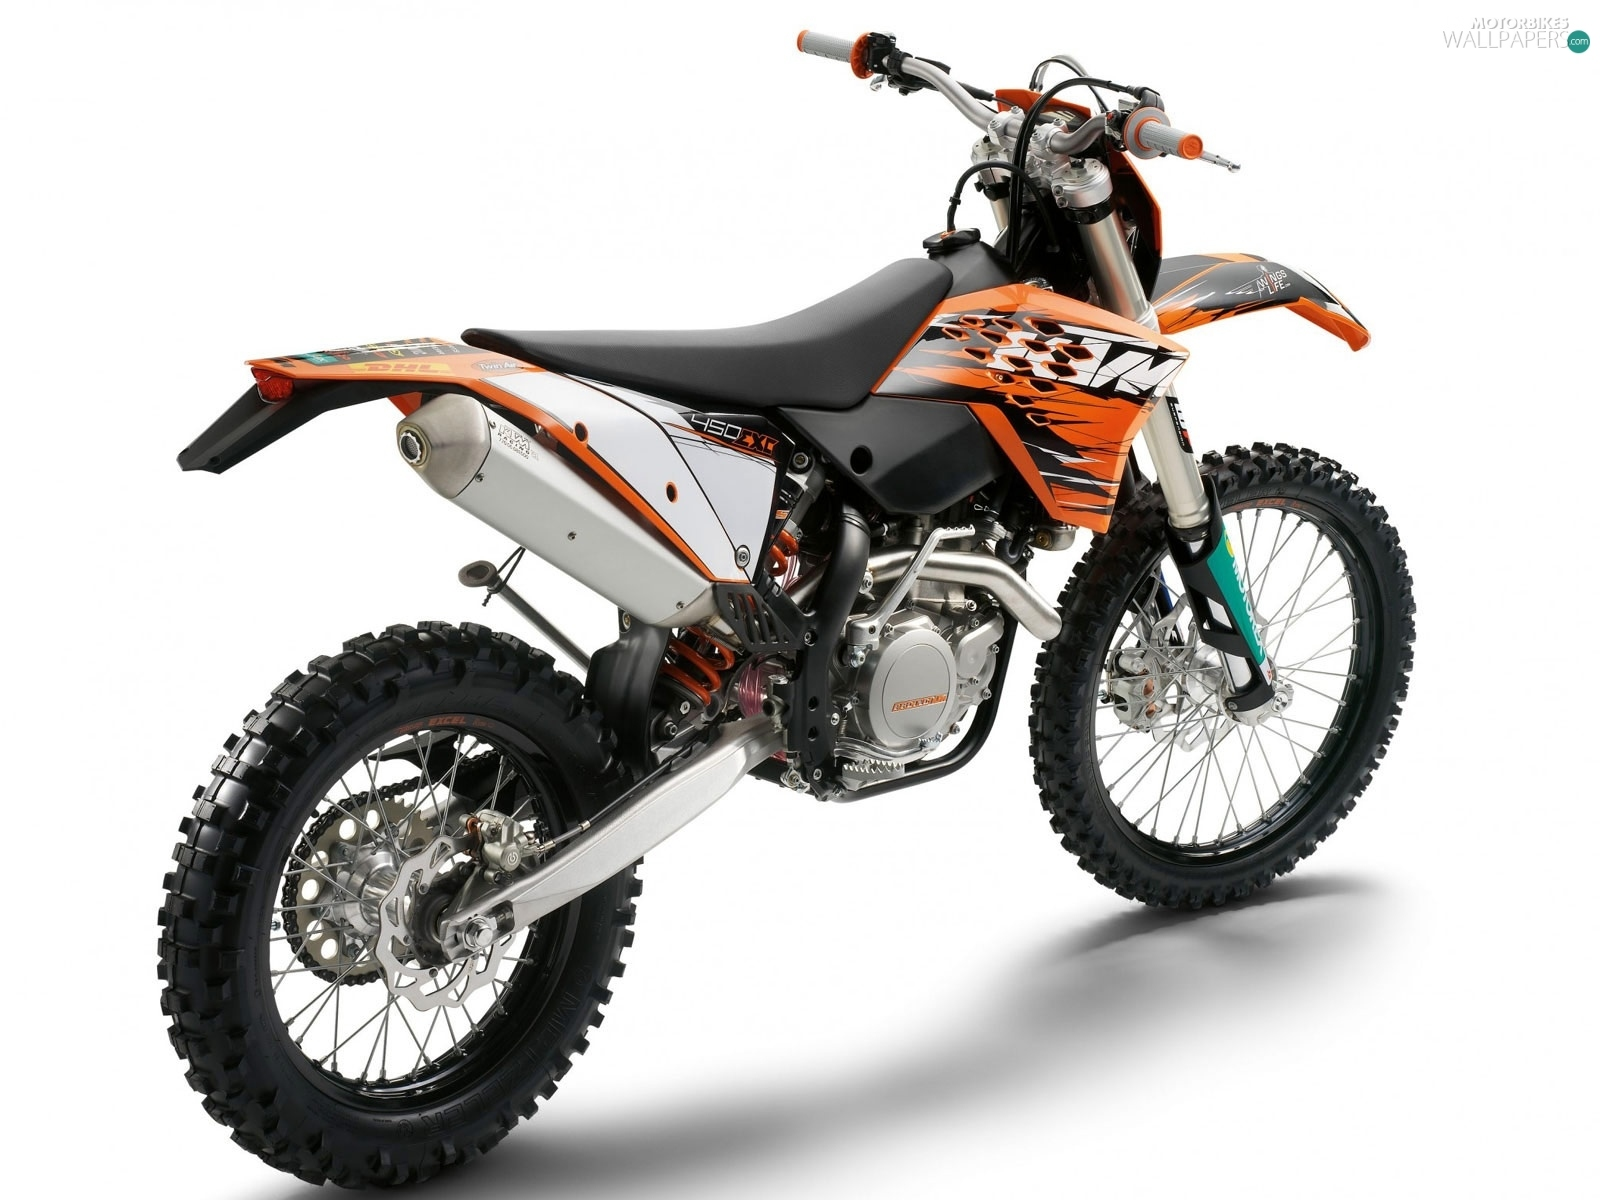 ktm 450 exc cross motorbikes wallpapers 1600x1200. Black Bedroom Furniture Sets. Home Design Ideas